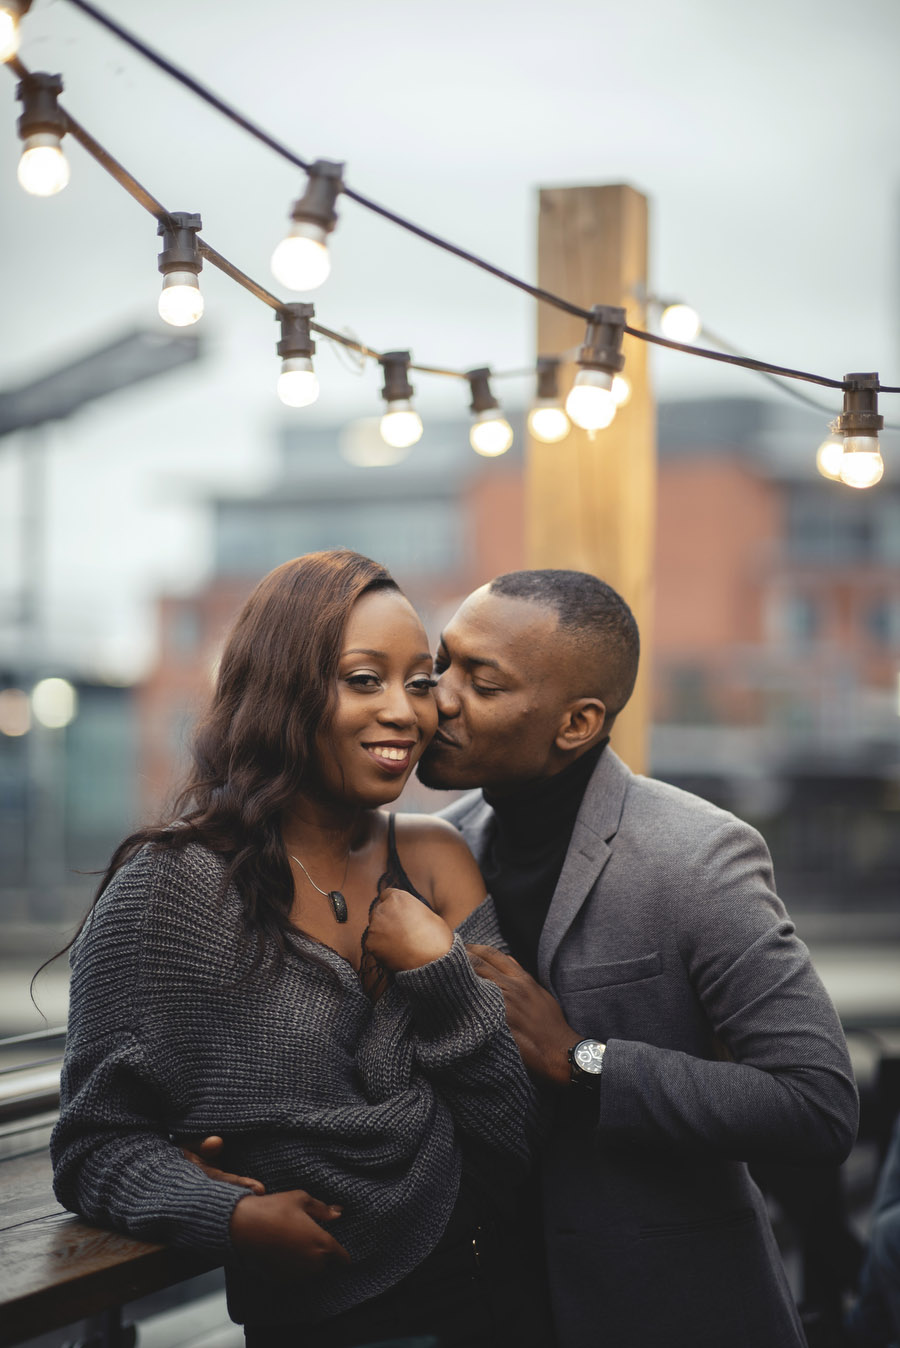 Leeds engagement photography by Bethany Lloyd-Clarke (3)